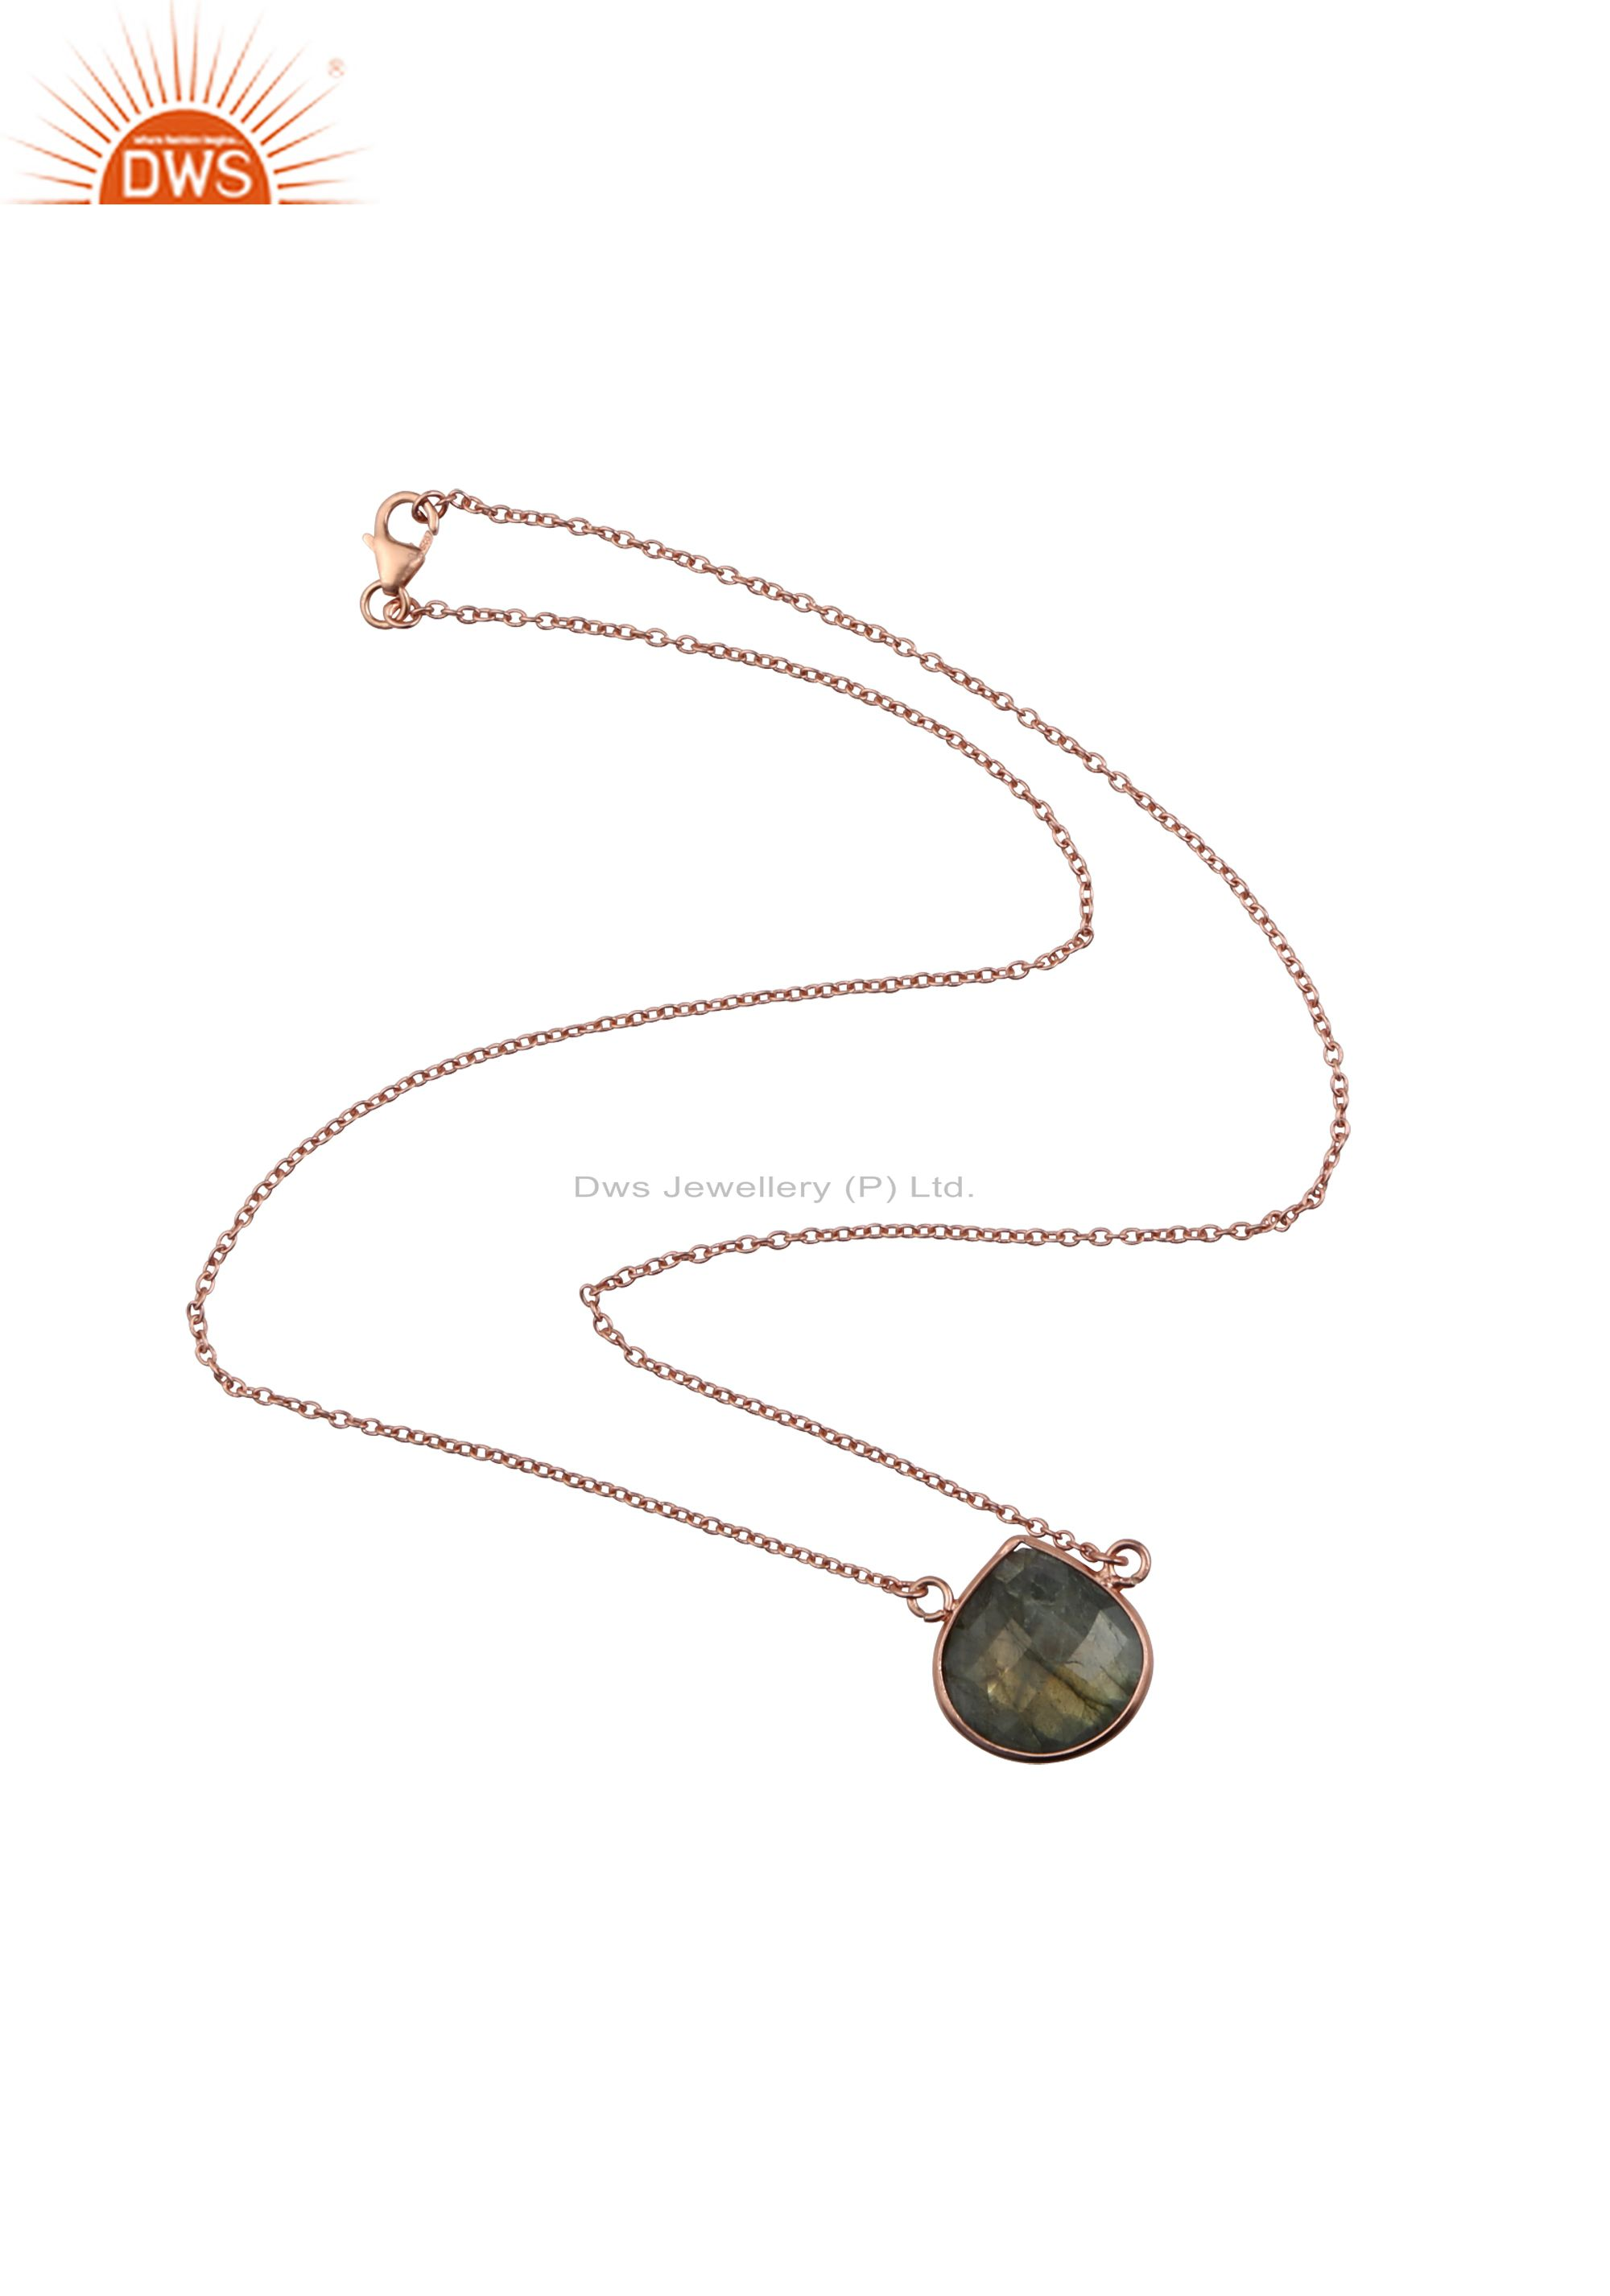 18k rose plated sterling silver labradorite gemstone pendant with chain